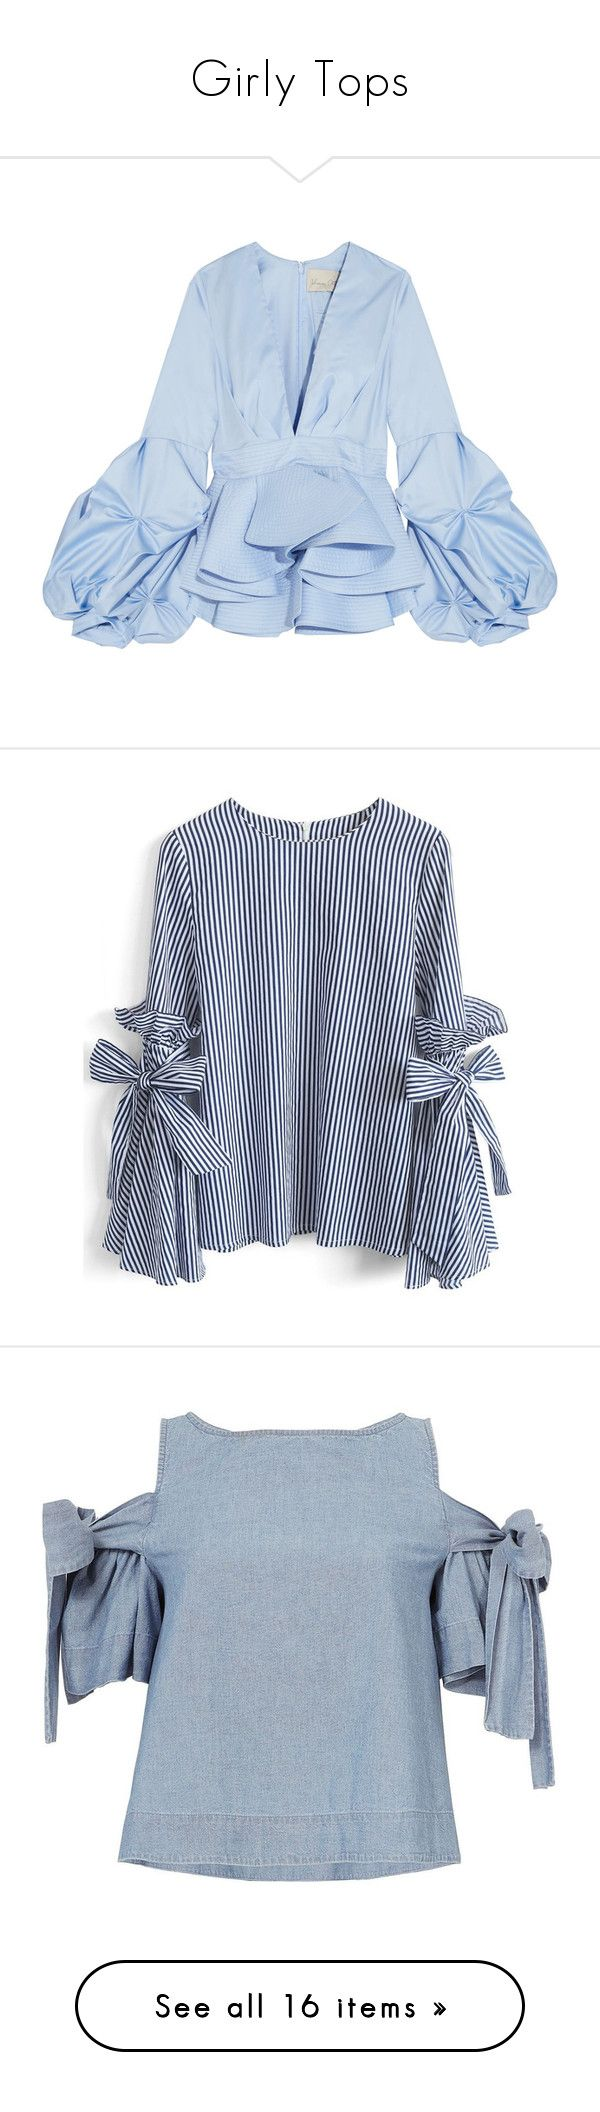 """Girly Tops"" by carmen-ireland ❤ liked on Polyvore featuring tops, blouses, flounce tops, peplum blouse, plunging neckline blouse, ruched tops, blue top, blue, bell sleeve tops and ruffle top"